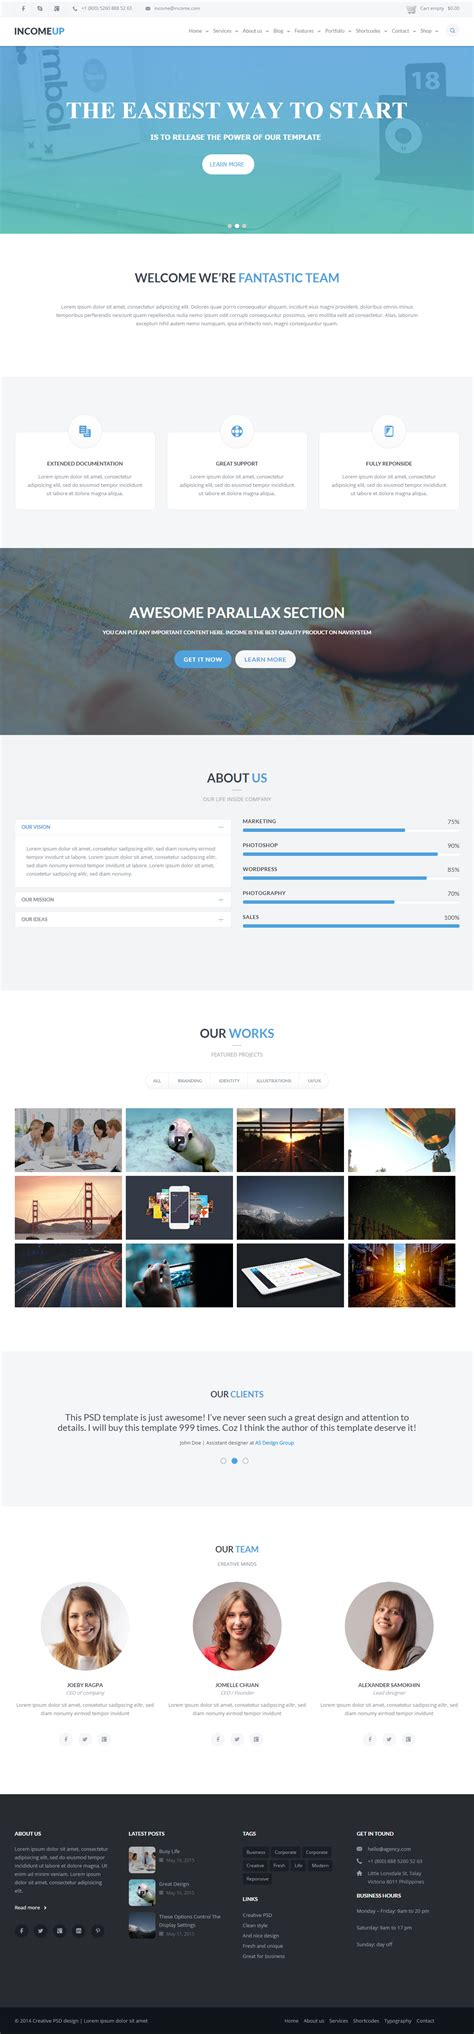 drupal theme not showing up in appearance incomeup premium responisve multipurpose drupal theme